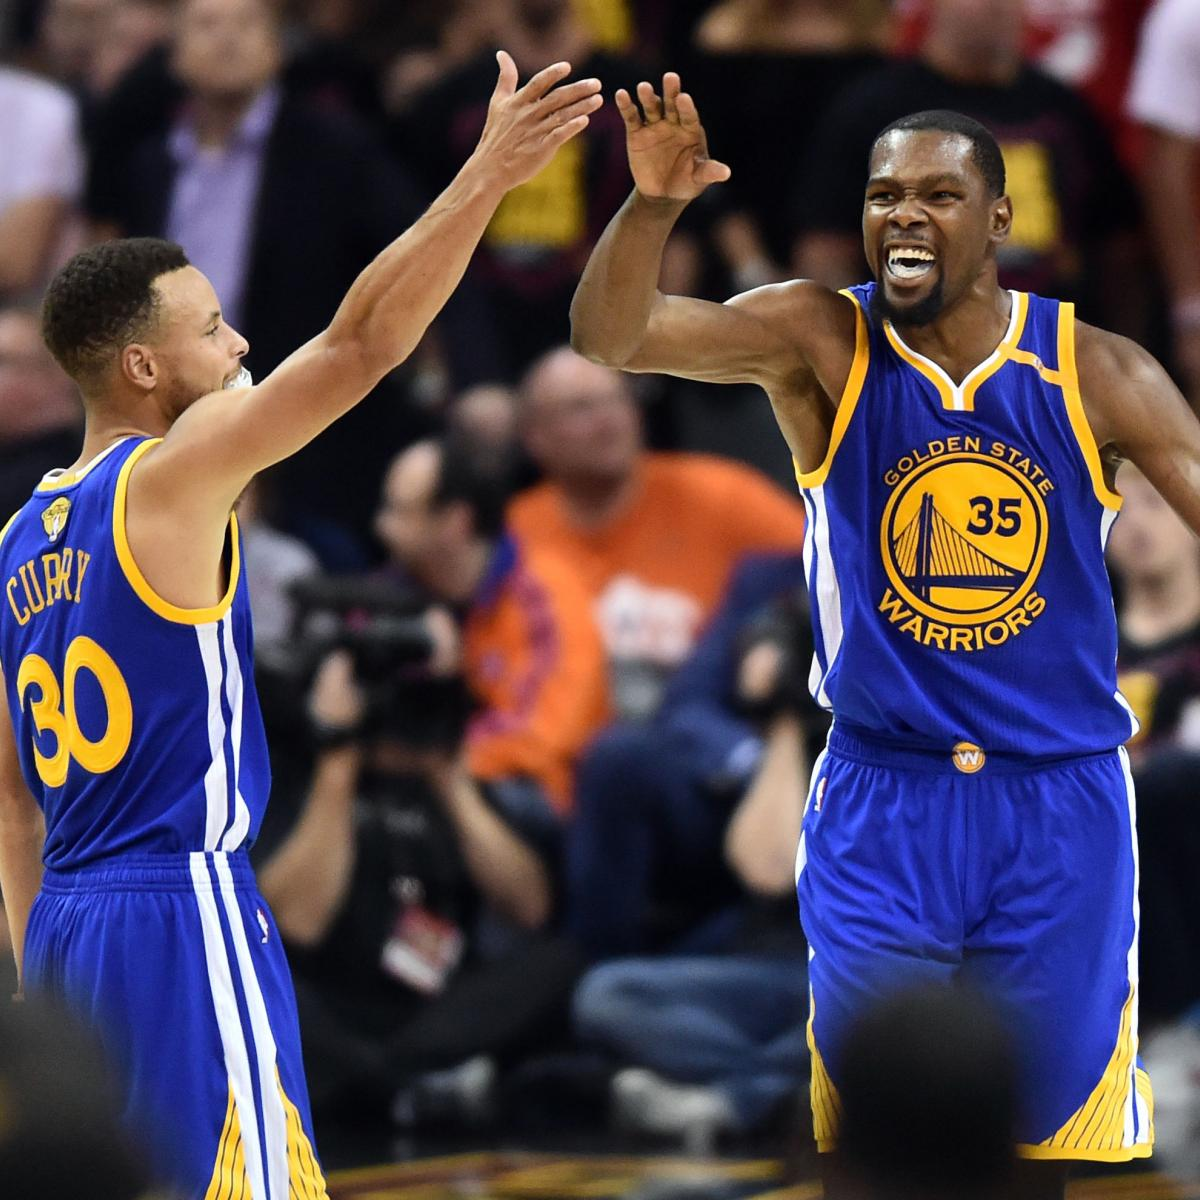 Kevin Durant Is Already Warriors Biggest Difference Maker: Stephen Curry And Co. Making Big Statement With KD In Ways